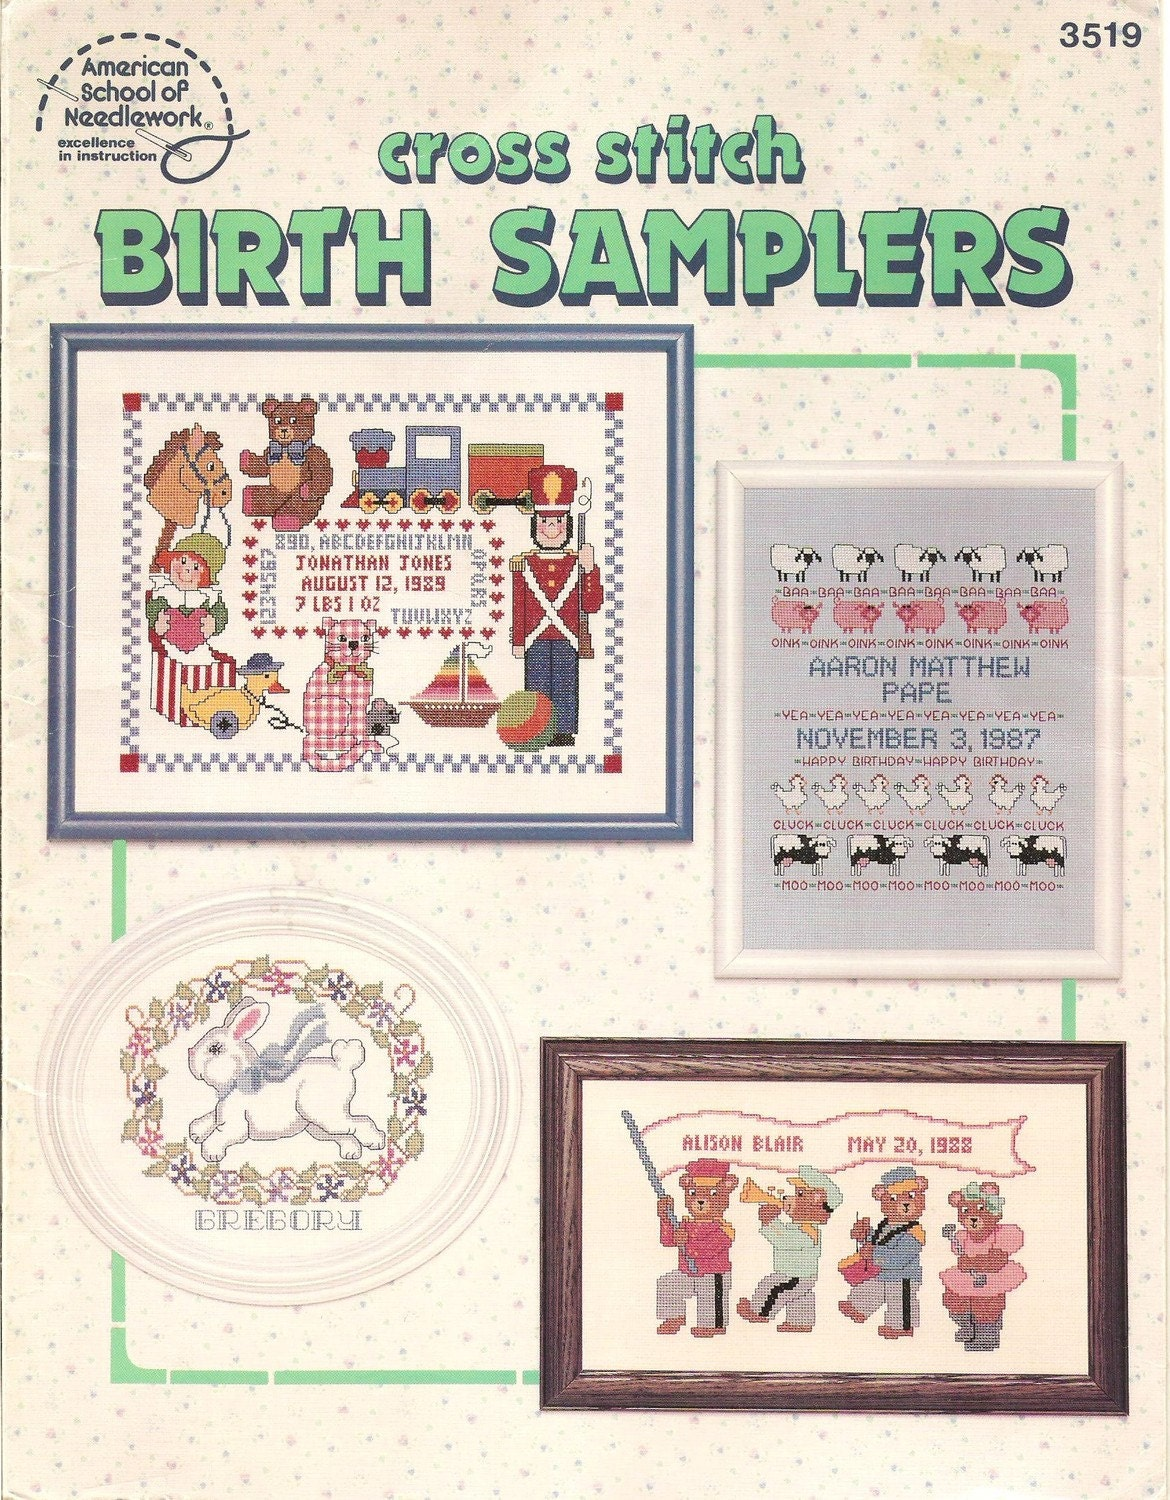 Cross stitch birth samplers pattern book by lilbitsofmine